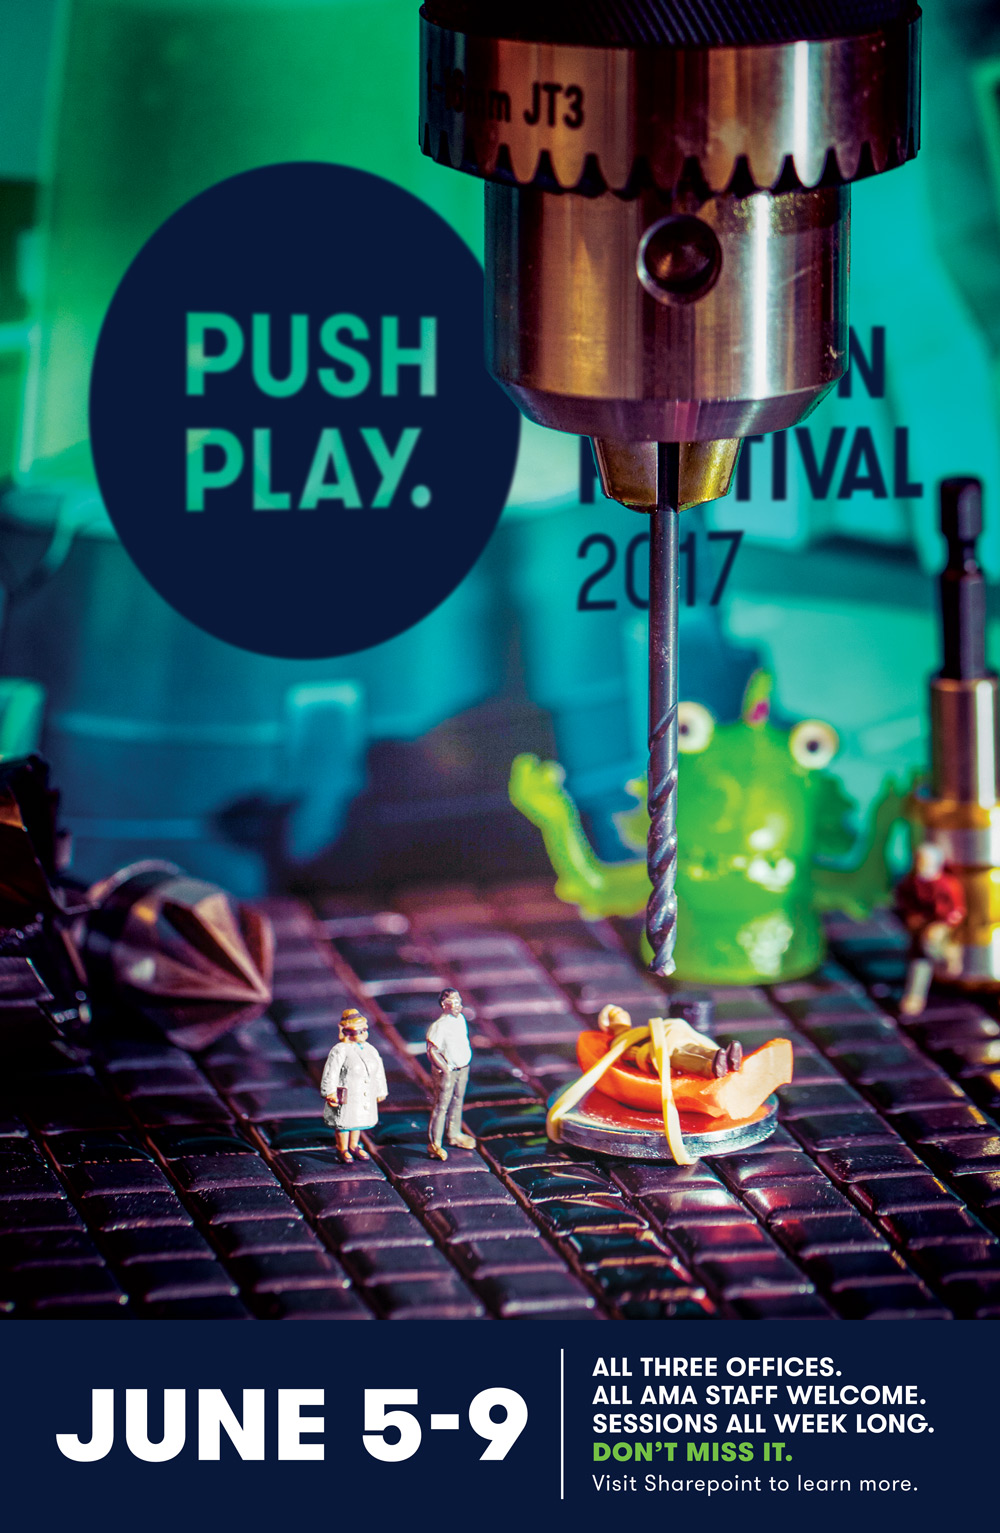 PushPlay-2017_POSTER-3-EMAIL.jpg